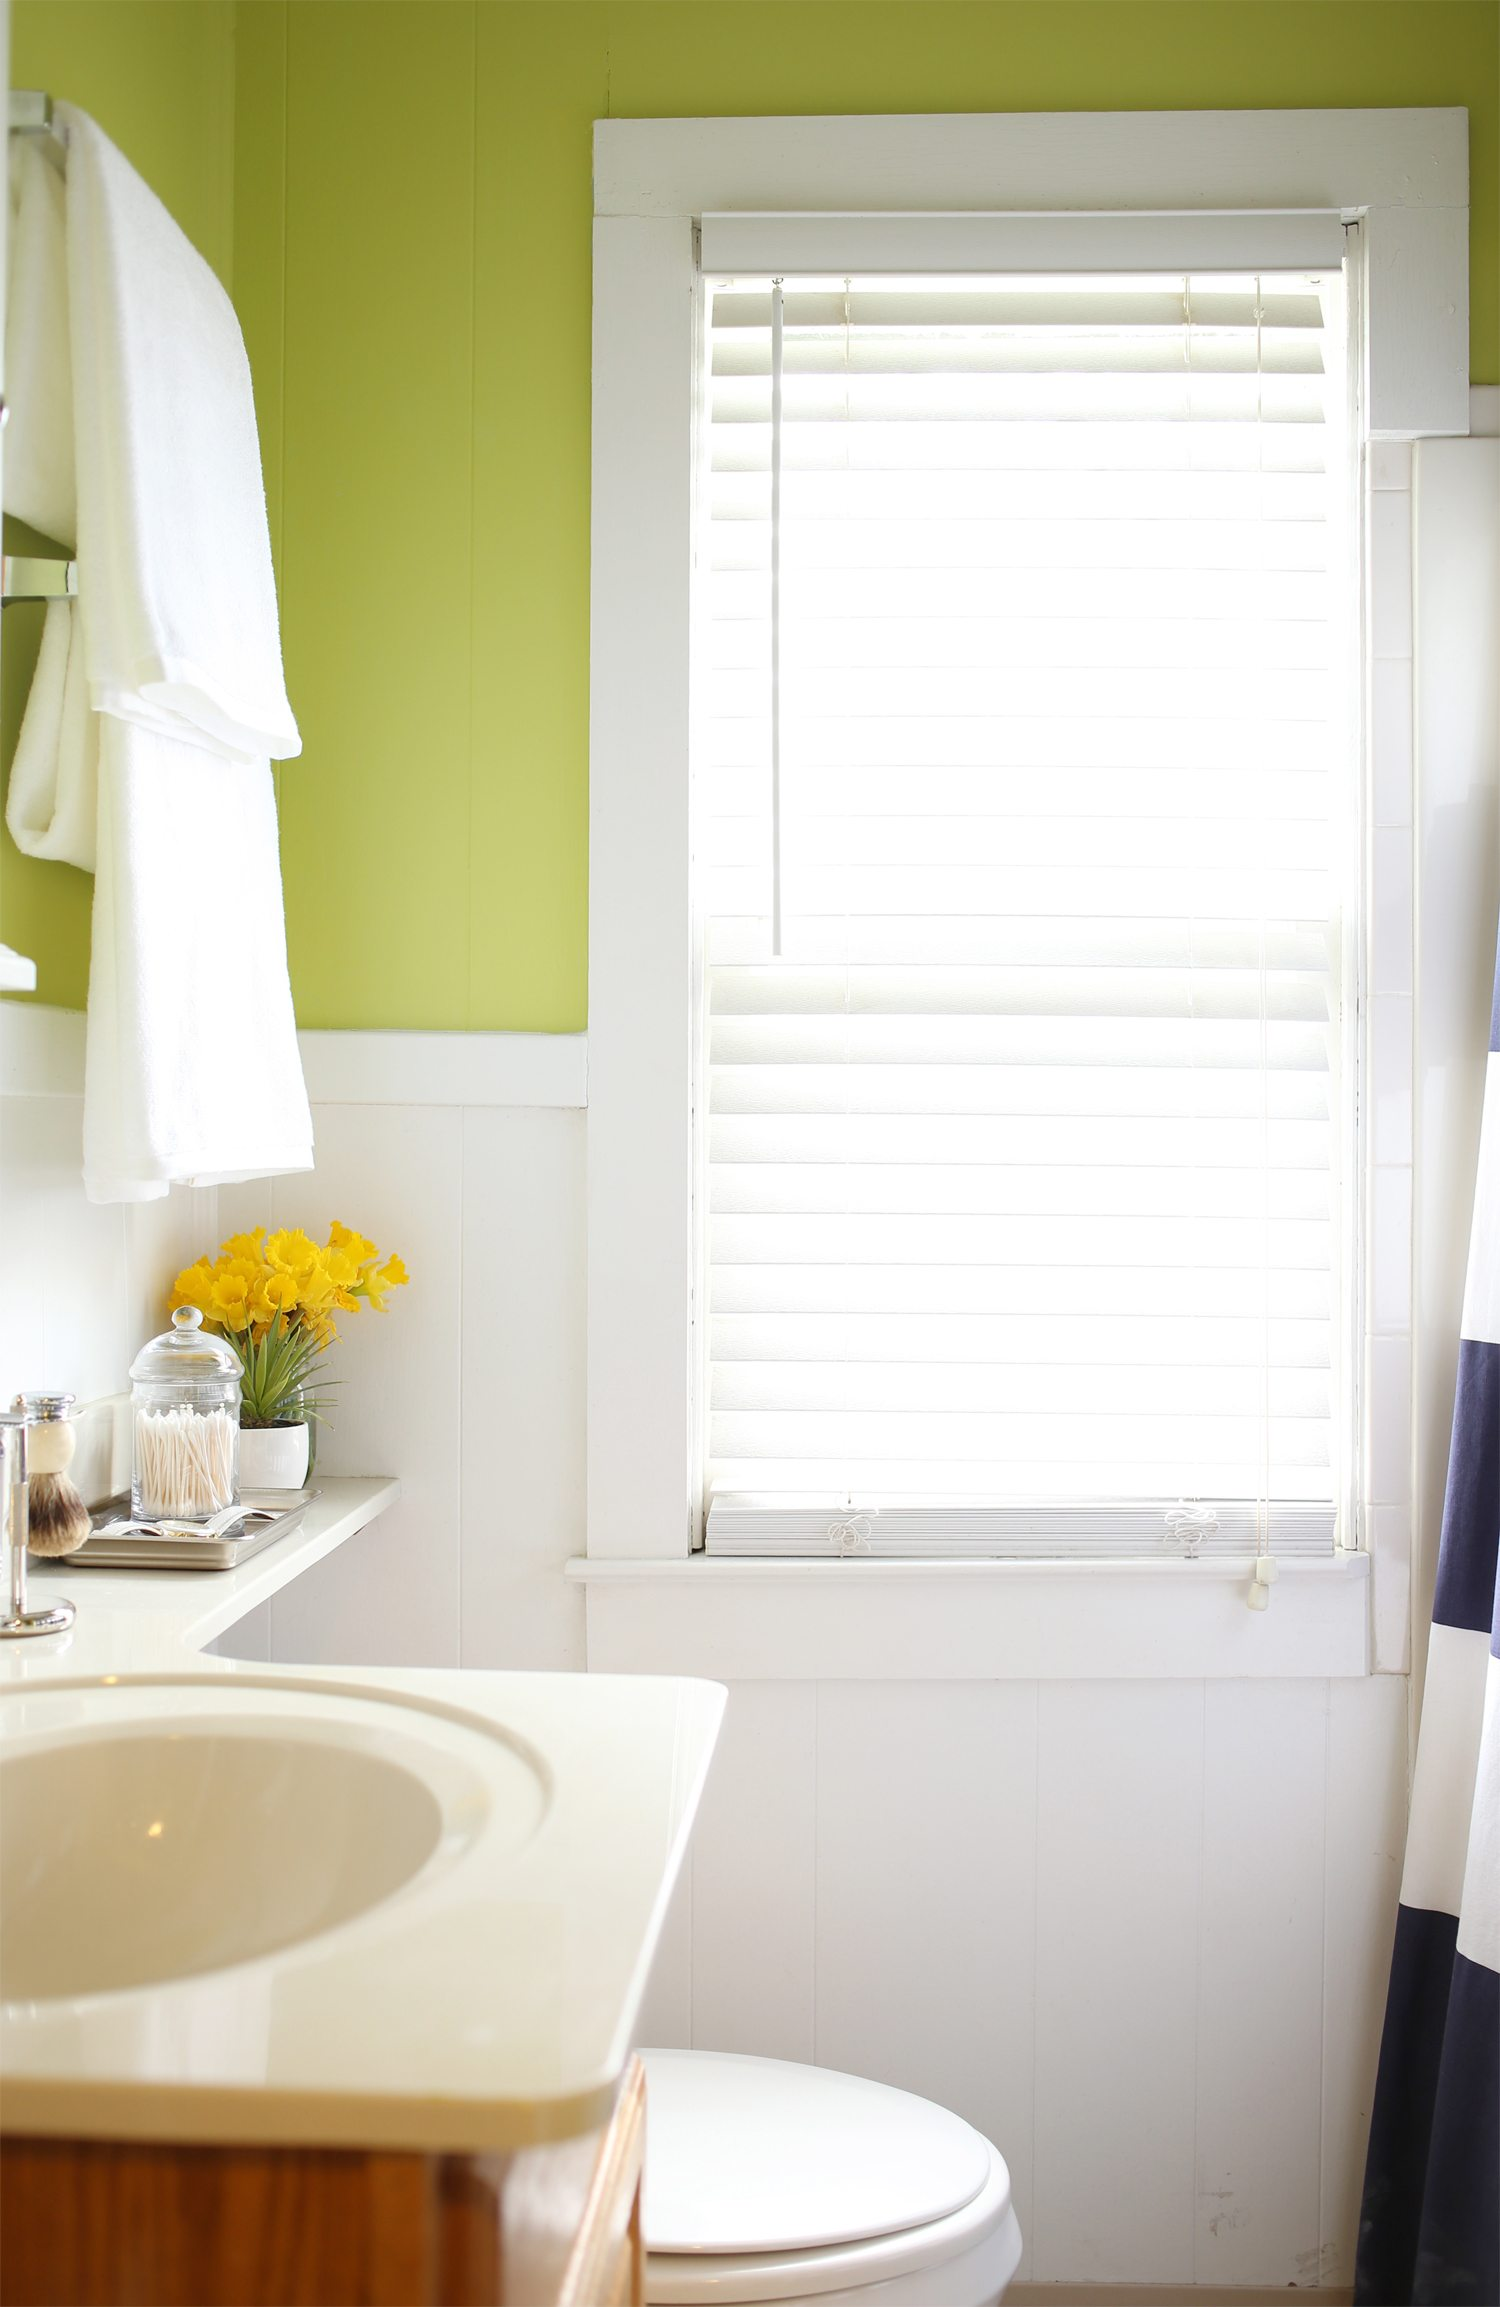 Awesome Mini Bathroom Renovation Bathroom Paint Colors from cydconverse and valsparpaint